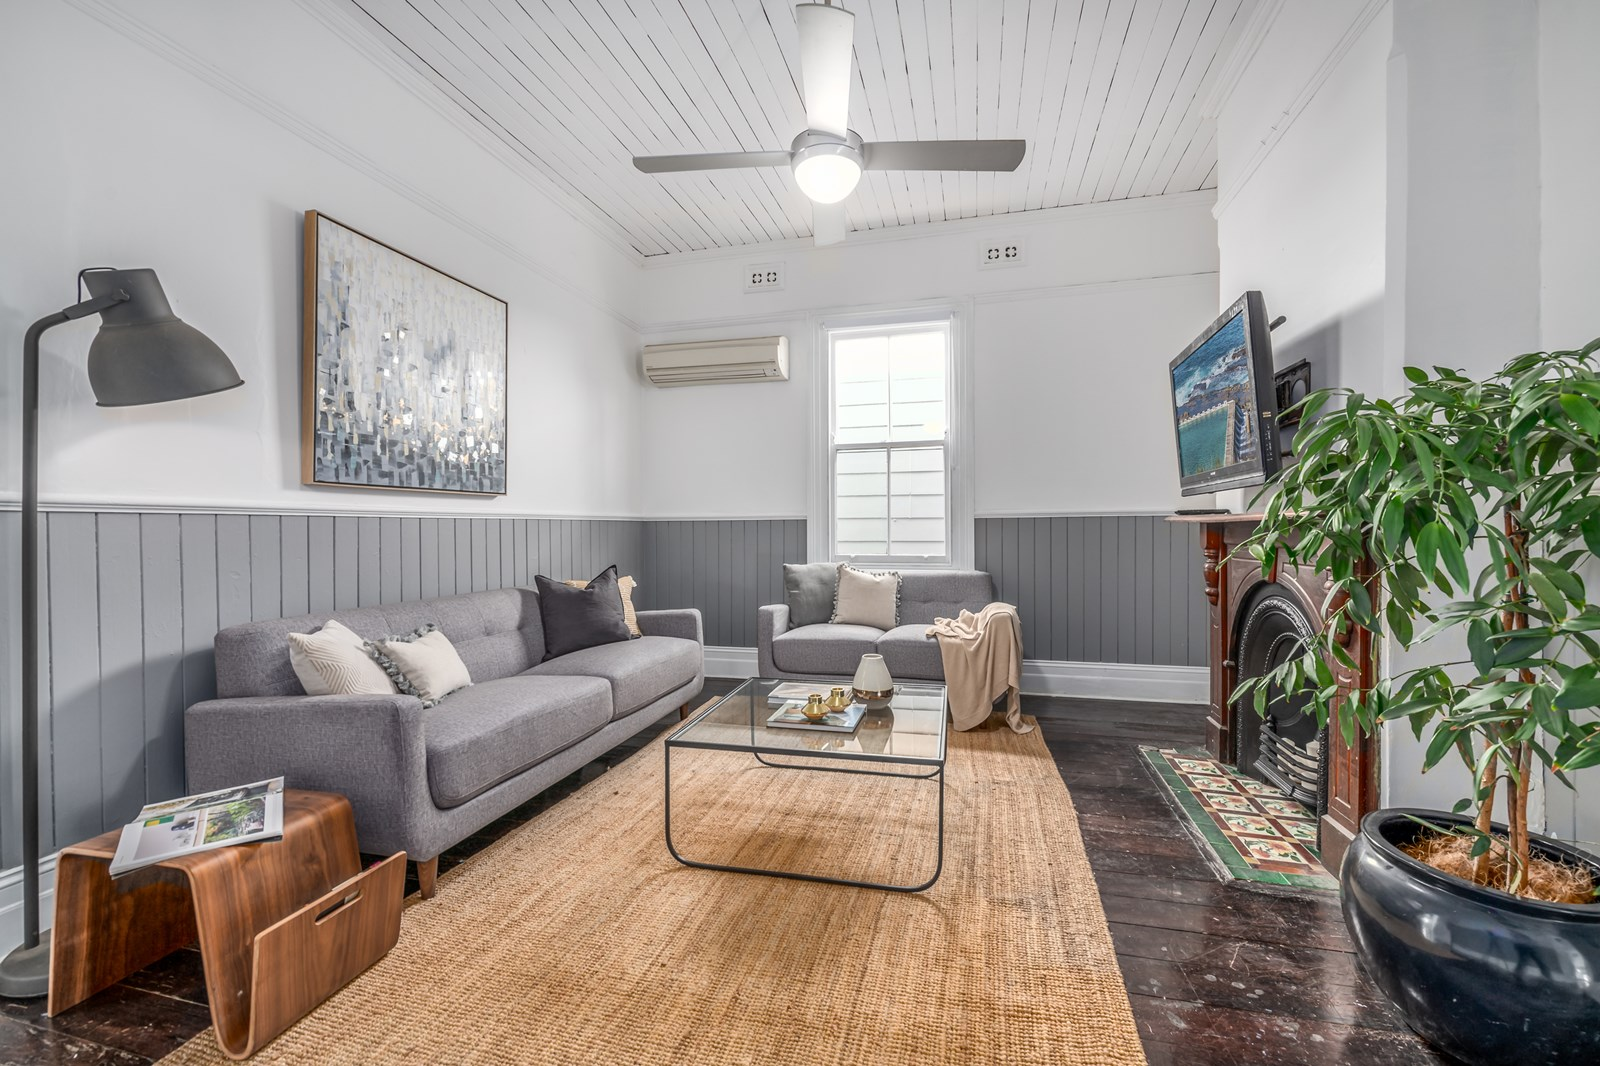 dumaresq St | hamilton EXPECTED PRICE: $795KSTAGING COST: $4650SOLD: $875KUPLIFT: $75,000 - October 2018